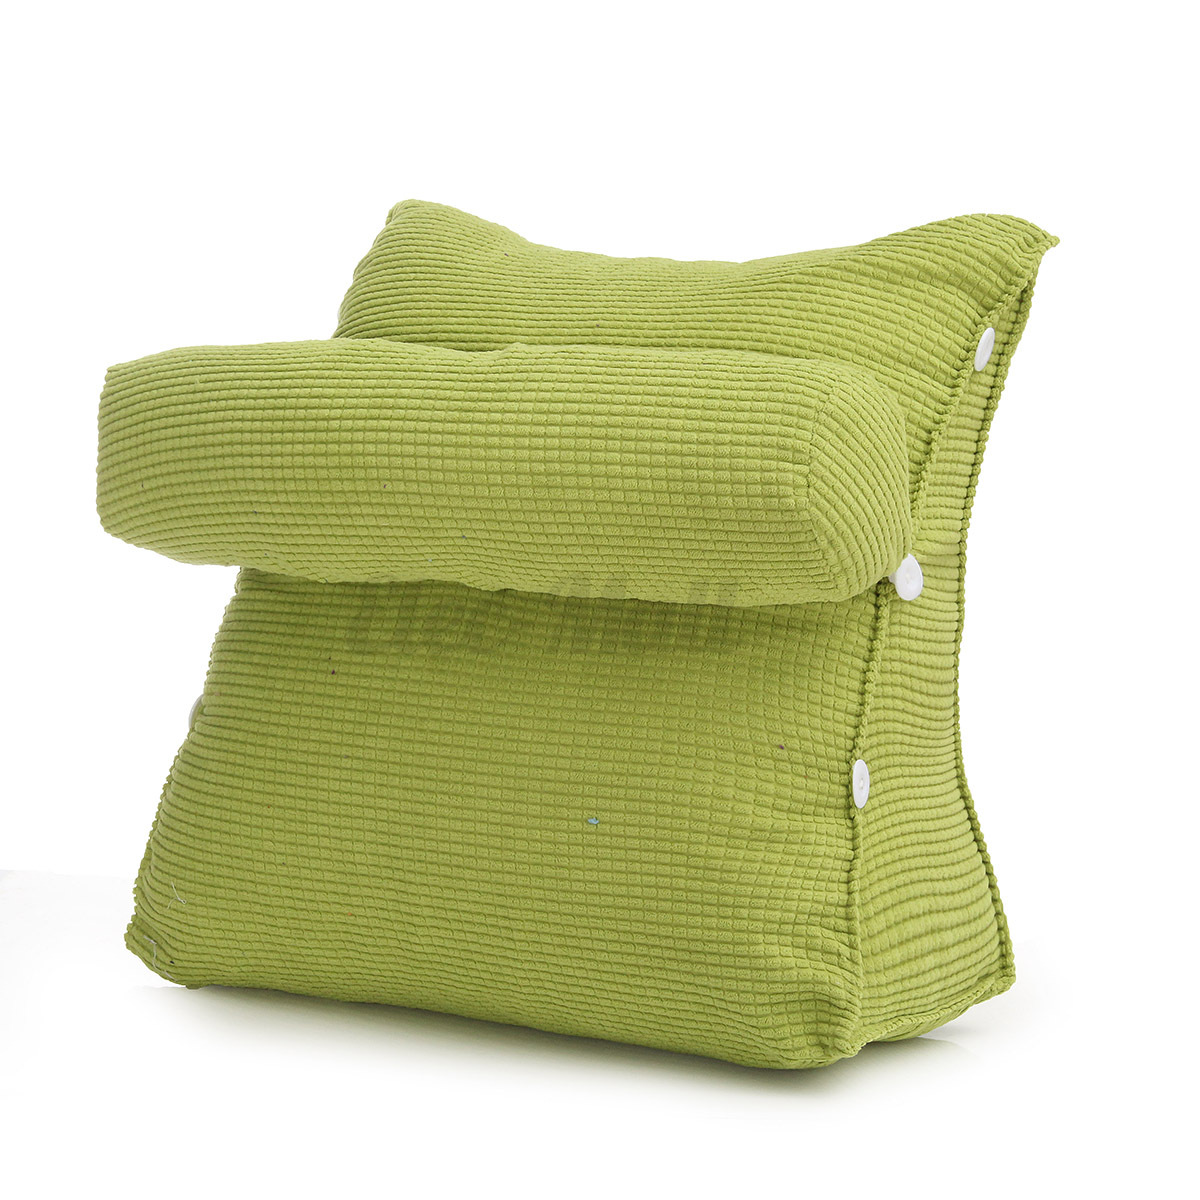 back pillow for office chair frost king lawn webbing sofa bed cushion adjustable neck support